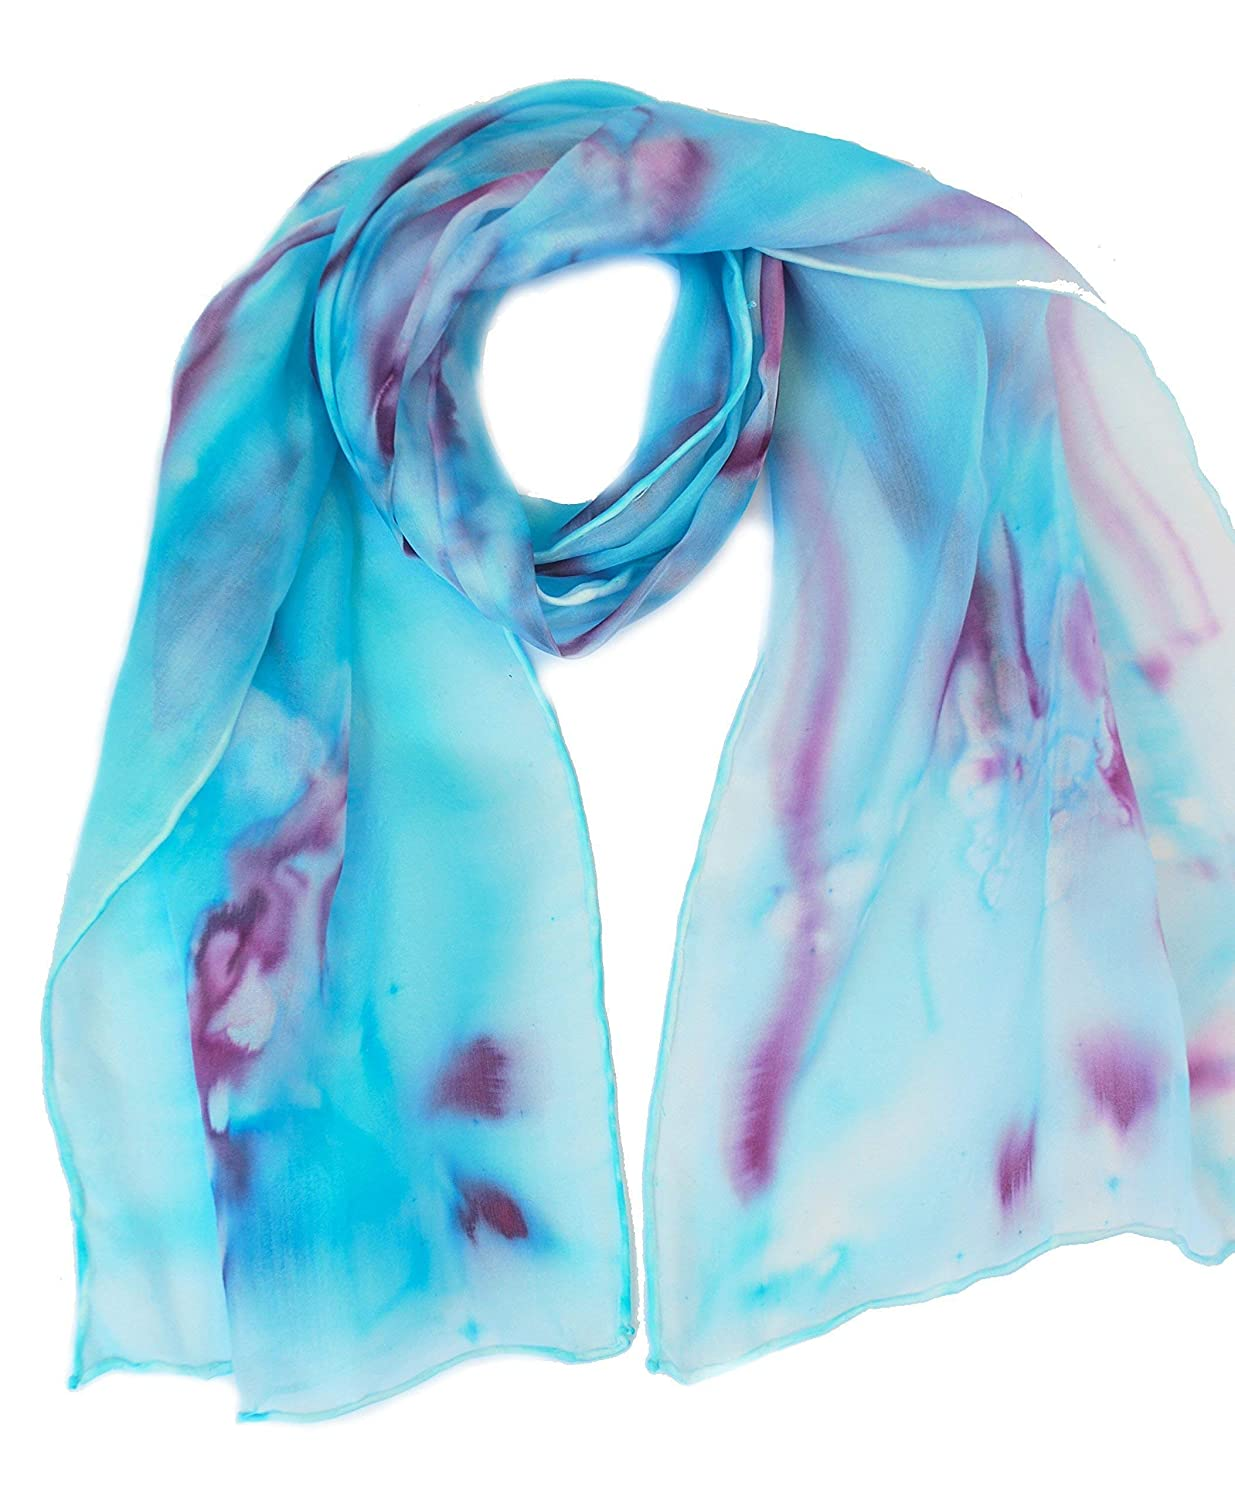 Silk scarf for women, hand painted silk scarves, Turquoise and Plum plus more colours, silk scarves for ladies, Turquoise scarf